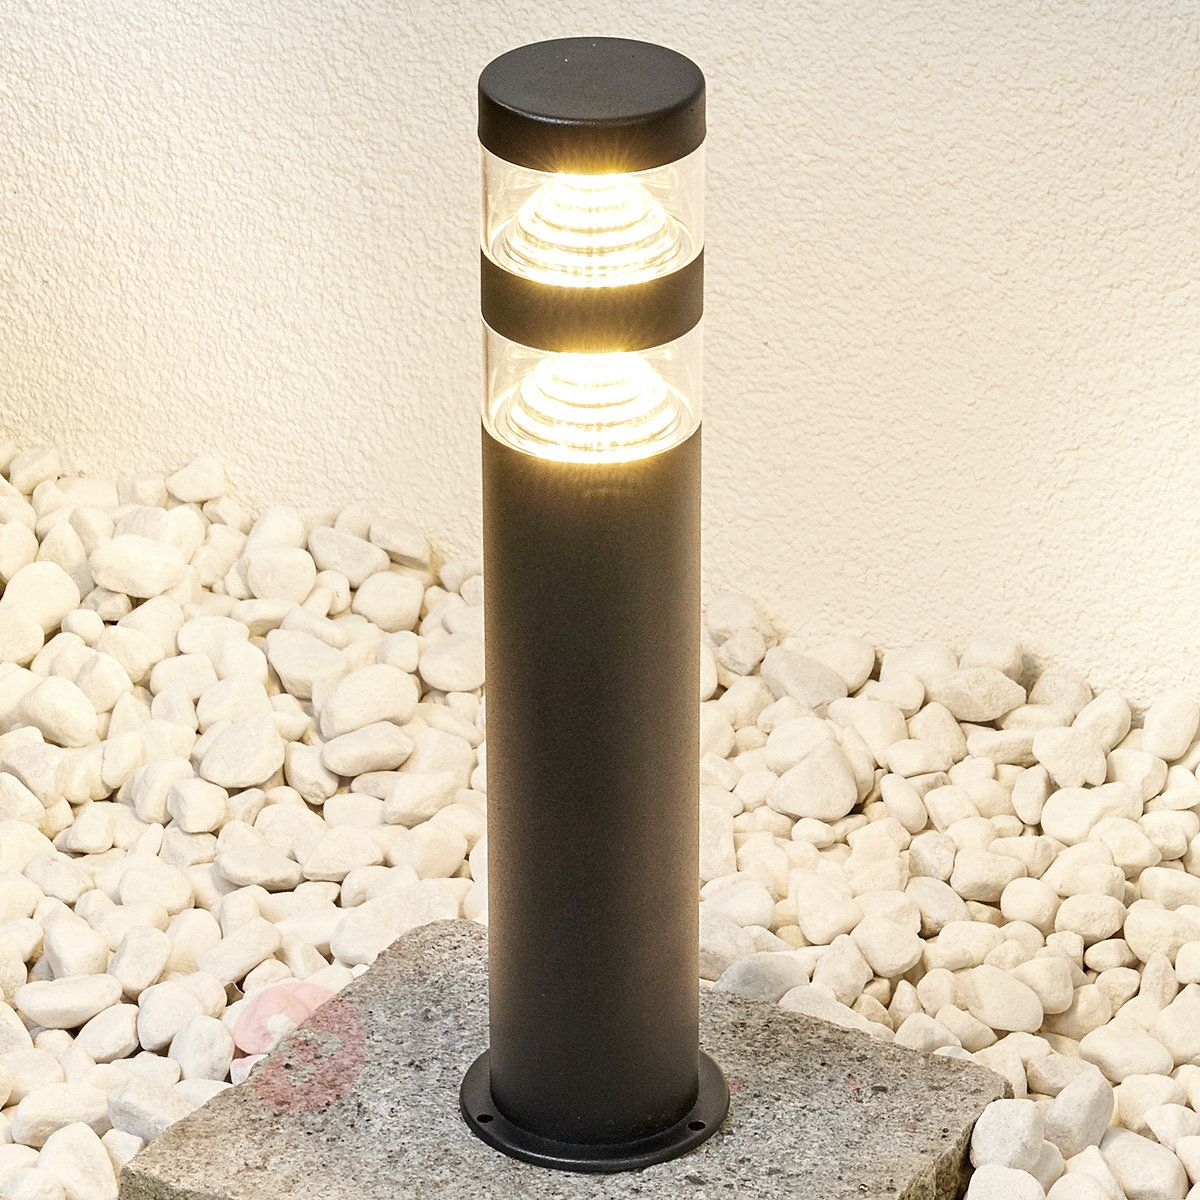 Lanea pillar light with LEDs - warm white